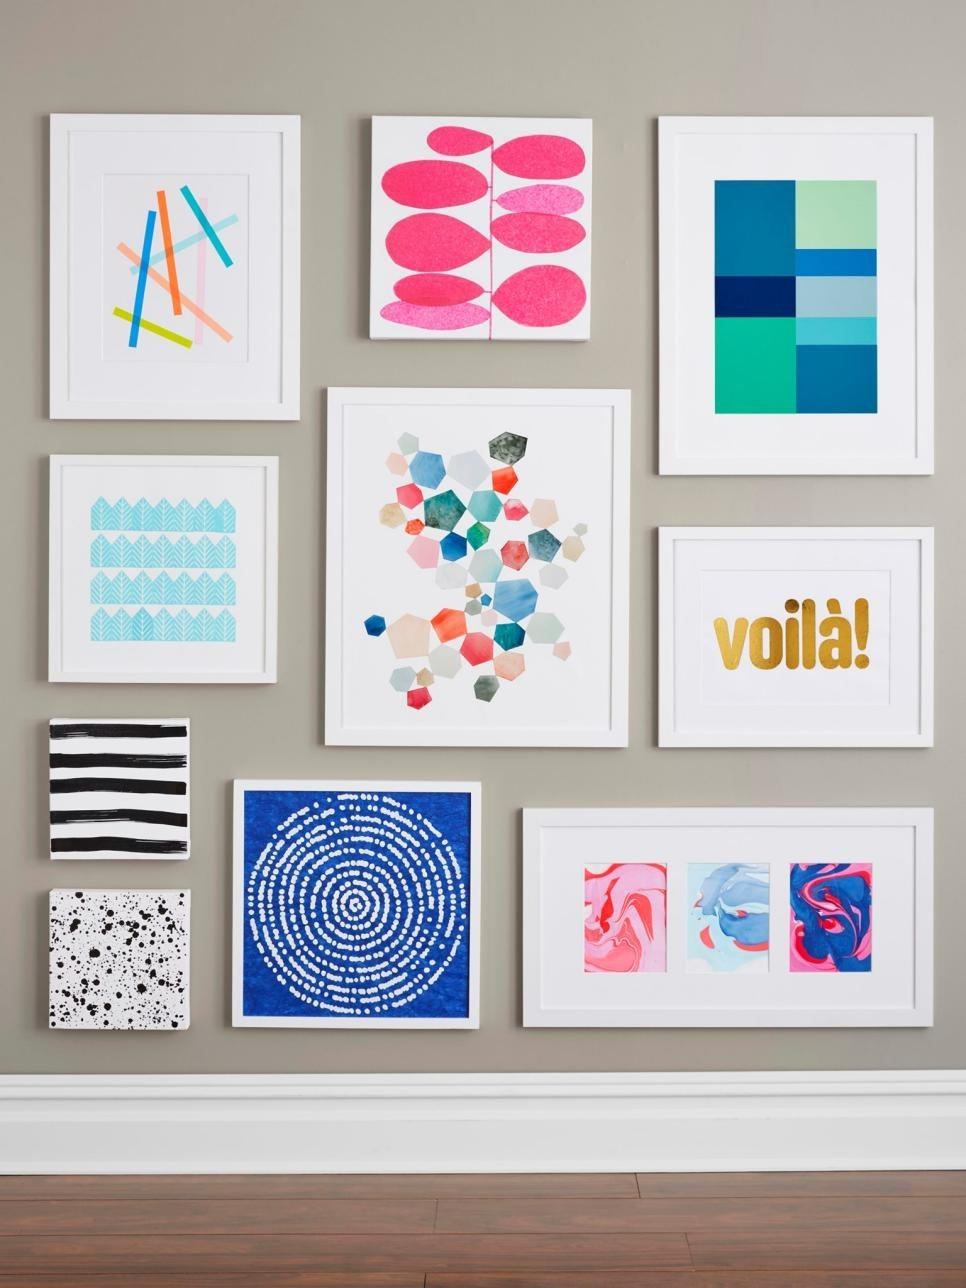 Diy Wall Art Diy Wall Art Projects Anyone Can Do Hgtv | Fall Home Decor With Regard To Most Current Wall Art Diy (View 14 of 20)